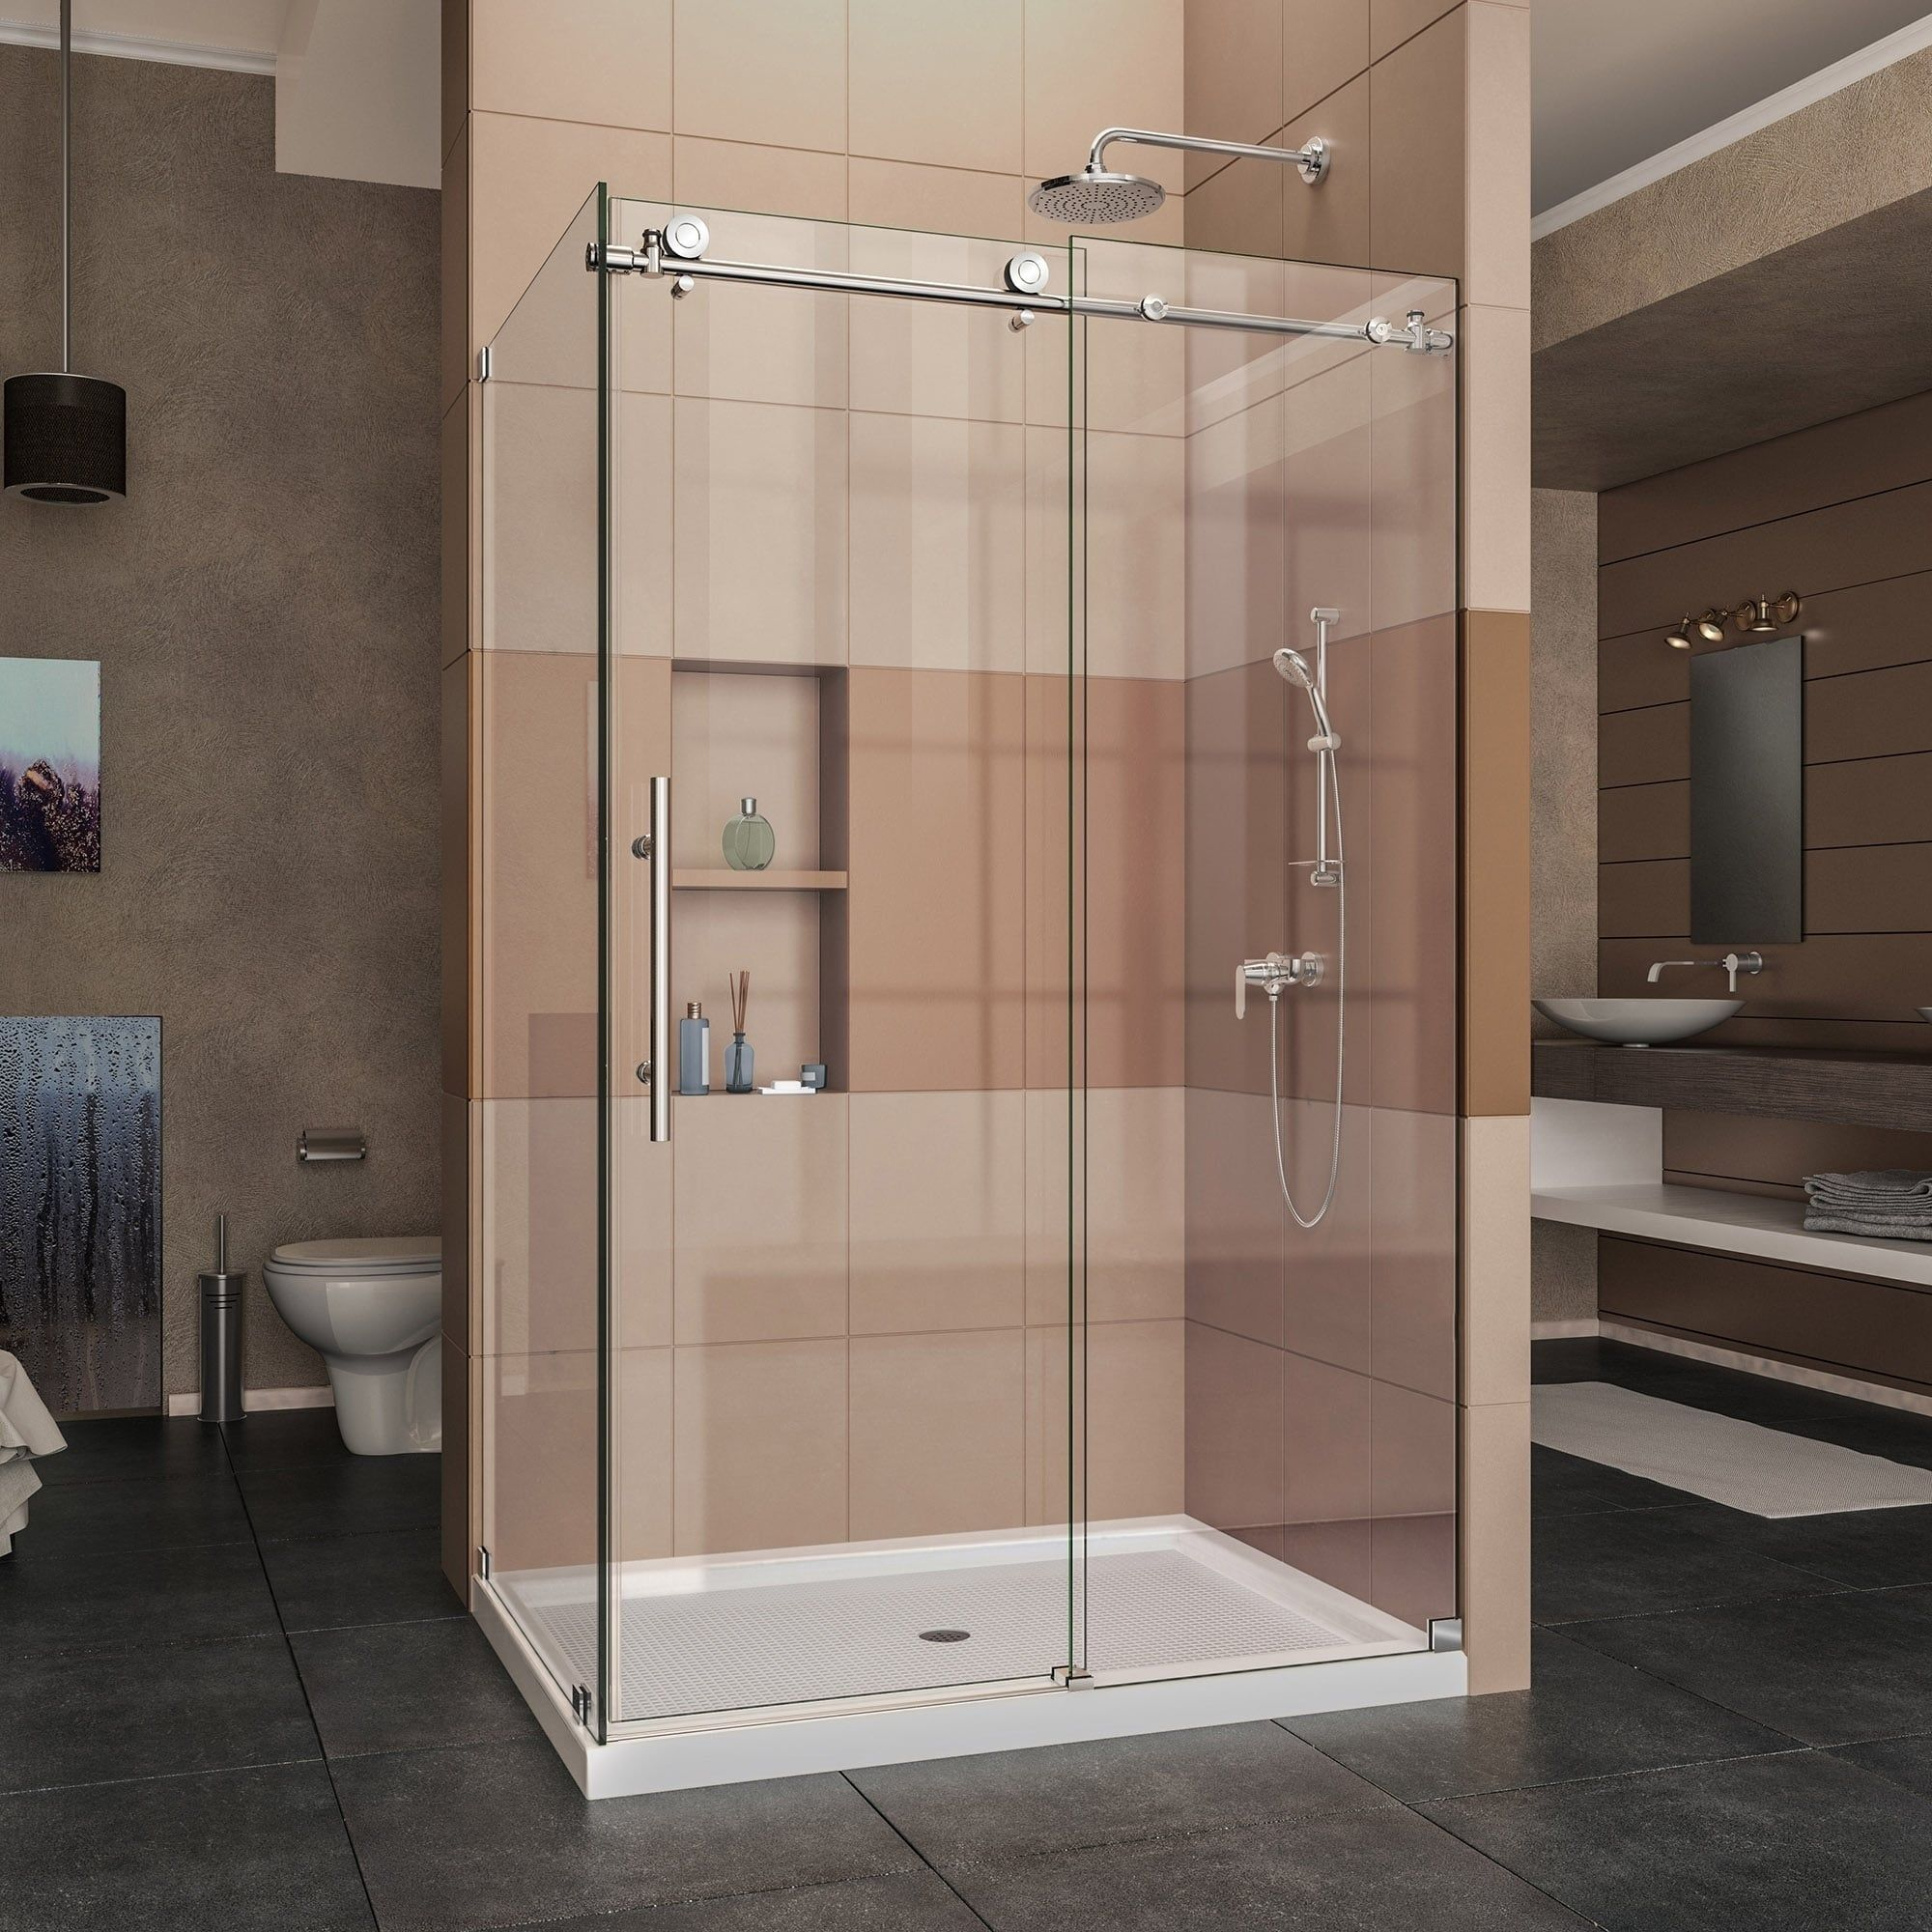 Dreamline Enigma X 34 1 2 In D X 48 3 8 In W X 76 In H Sliding Shower Enclosure 34 5 X 44 38 48 38 Shower Doors Frameless Shower Enclosures Shower Enclosure